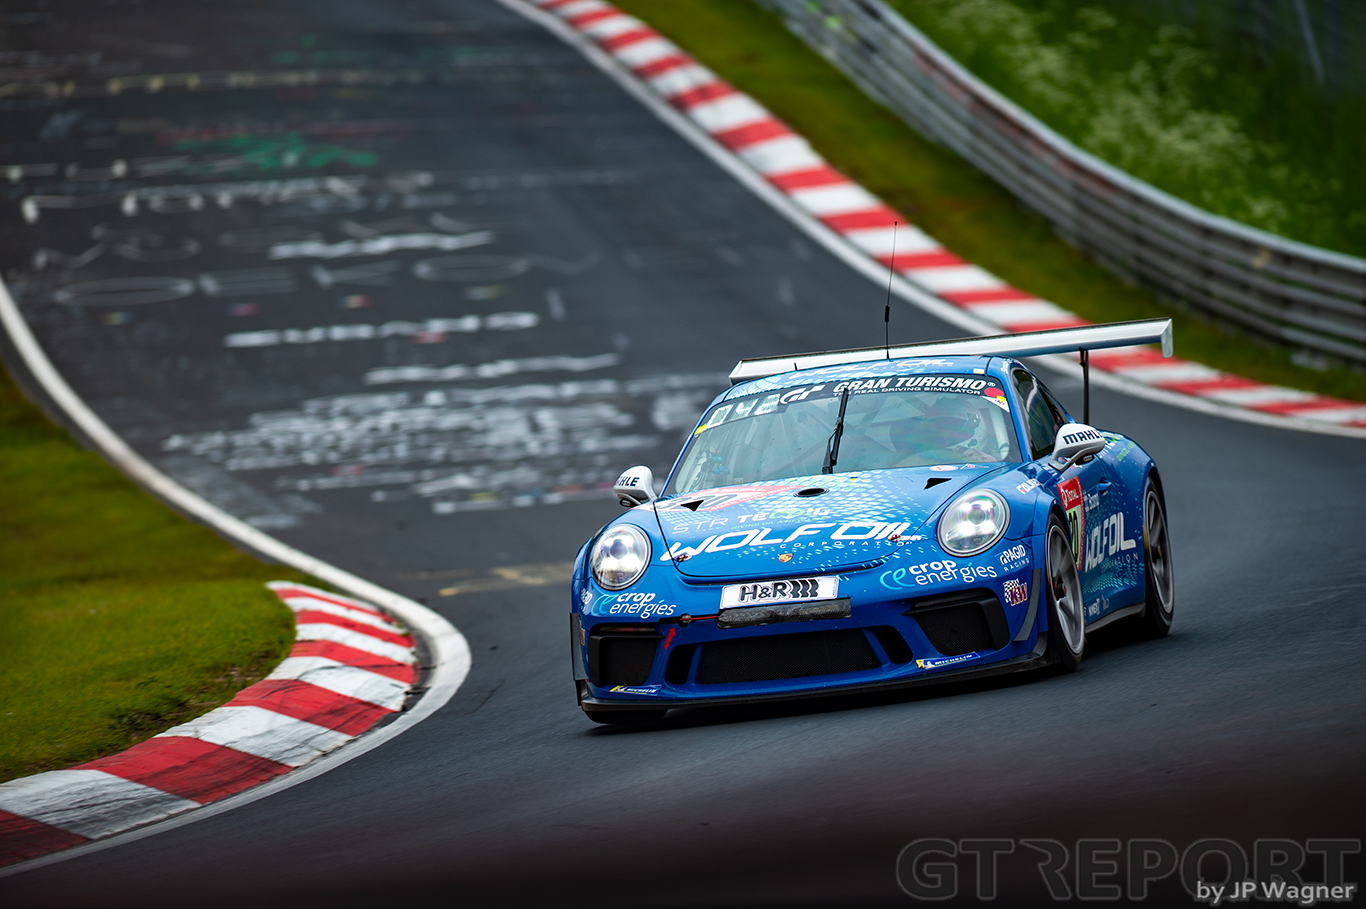 Nürburgring 24 Hours driver report: Thomas Kiefer – Race to the red flag